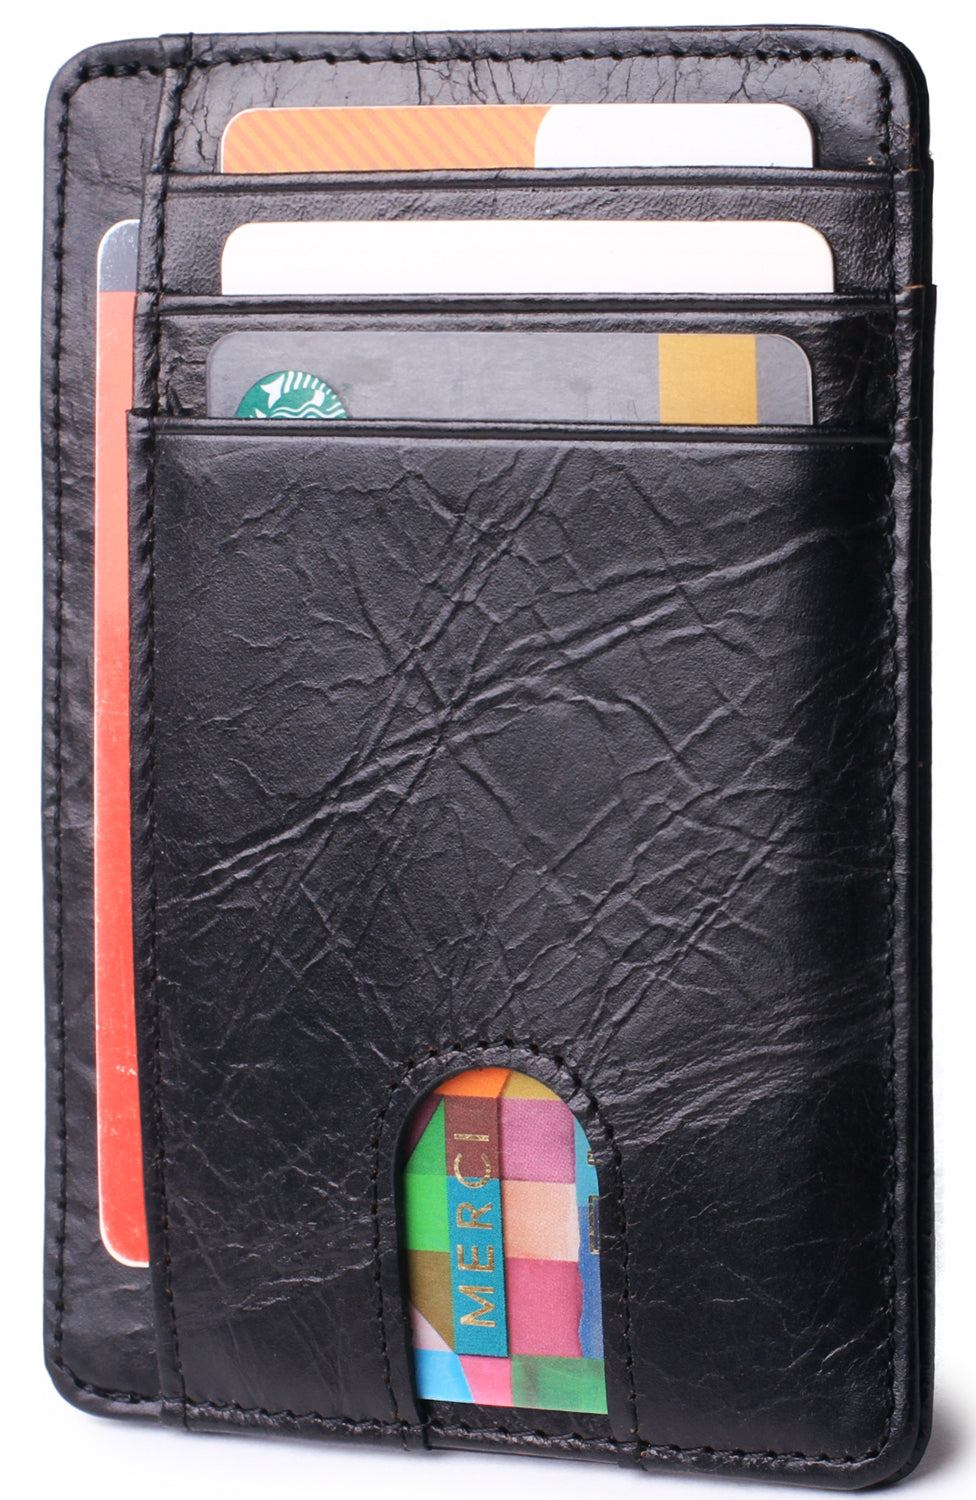 Slim Minimalist Front Pocket RFID Blocking Leather Wallets for Men & Women Wax Oil Black - Borgasets